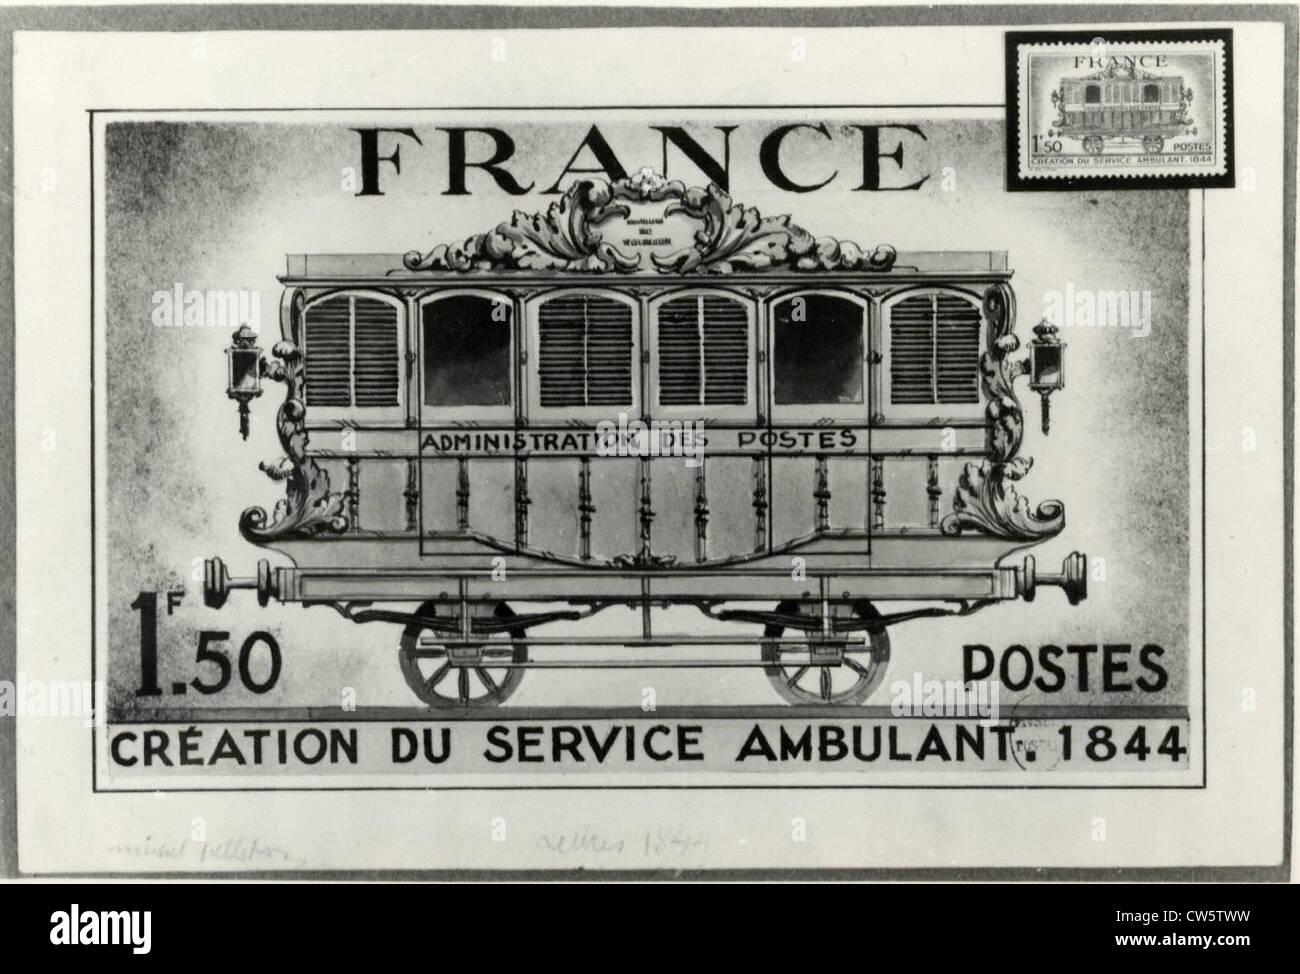 Stamp illustrating the creation of an ambulatory department of the French Postal Administration in 1844 - Stock Image